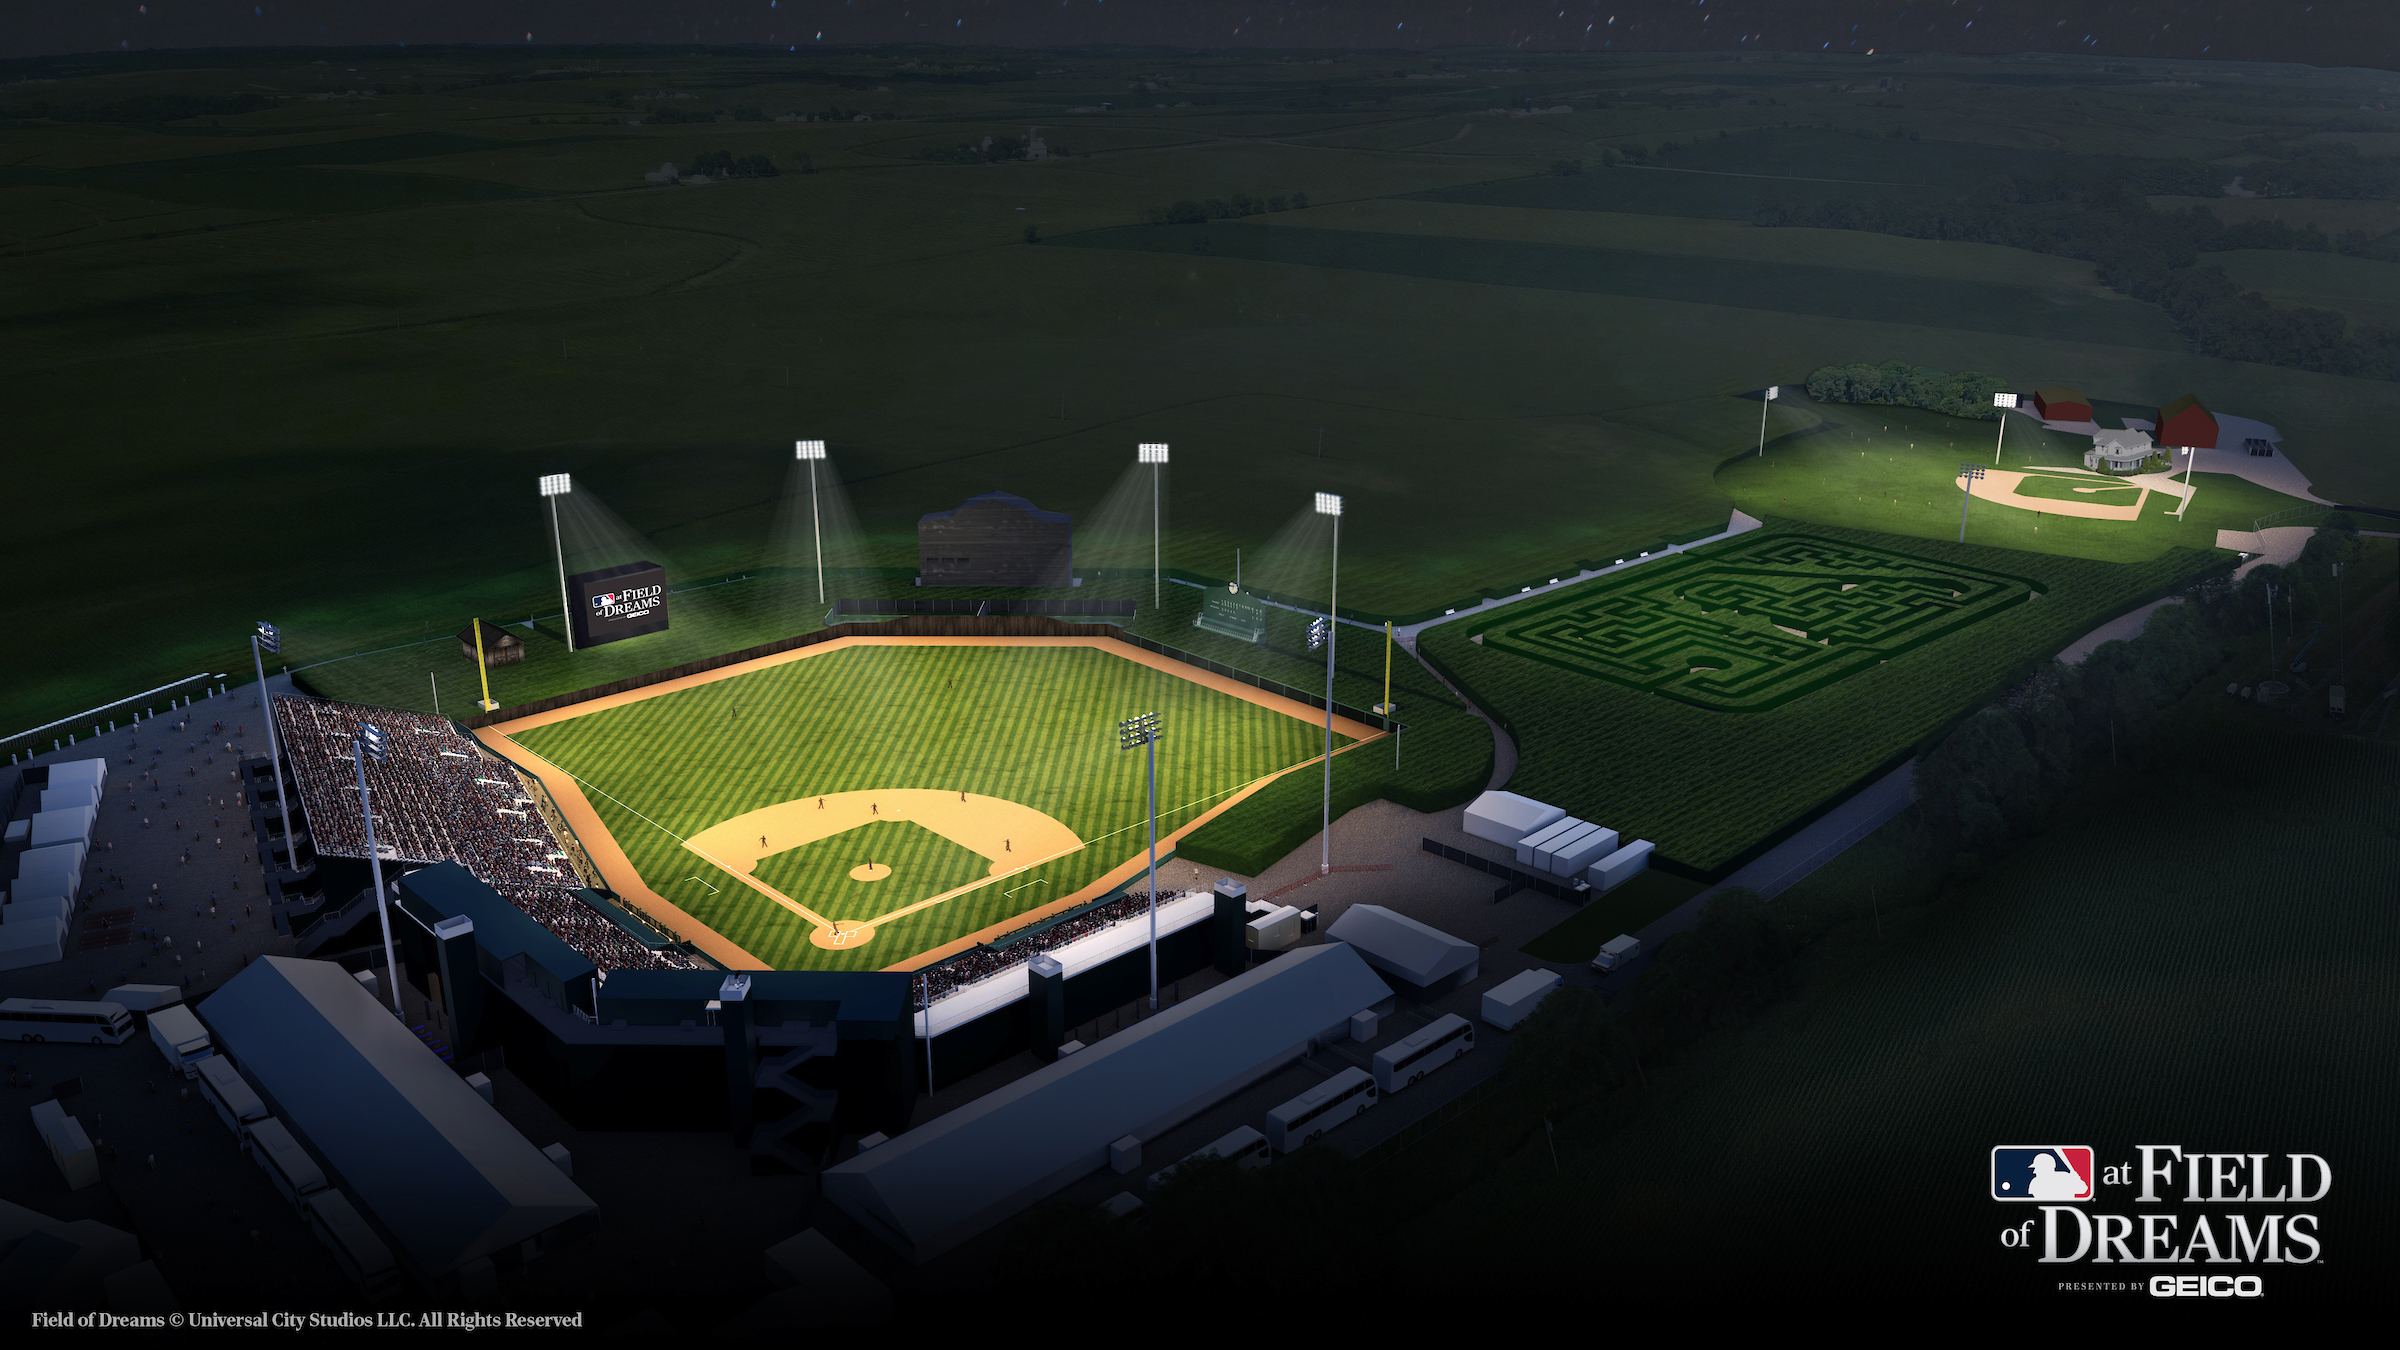 This pop-up baseball field in Iowa will host the White Sox and Yankees next week.